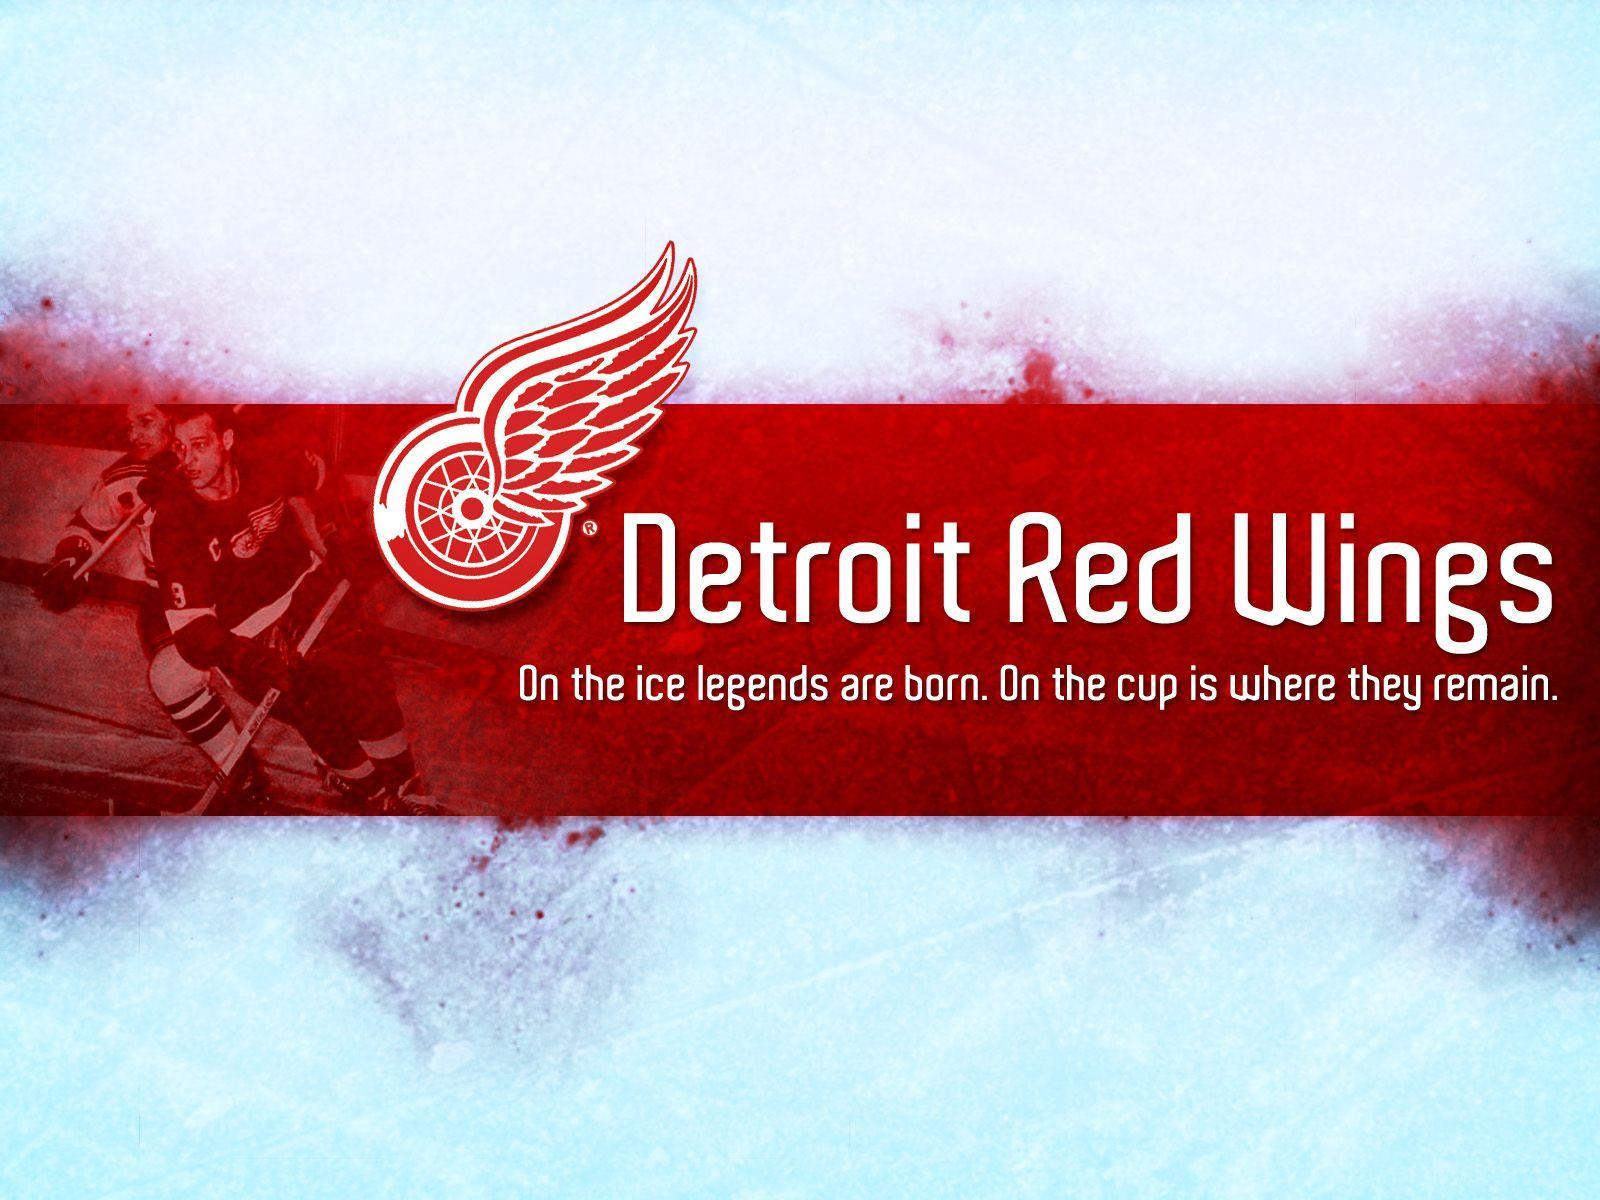 Detroit red wings 2017 wallpapers wallpaper cave 45 free detroit red wings wallpaper designs trivia voltagebd Gallery